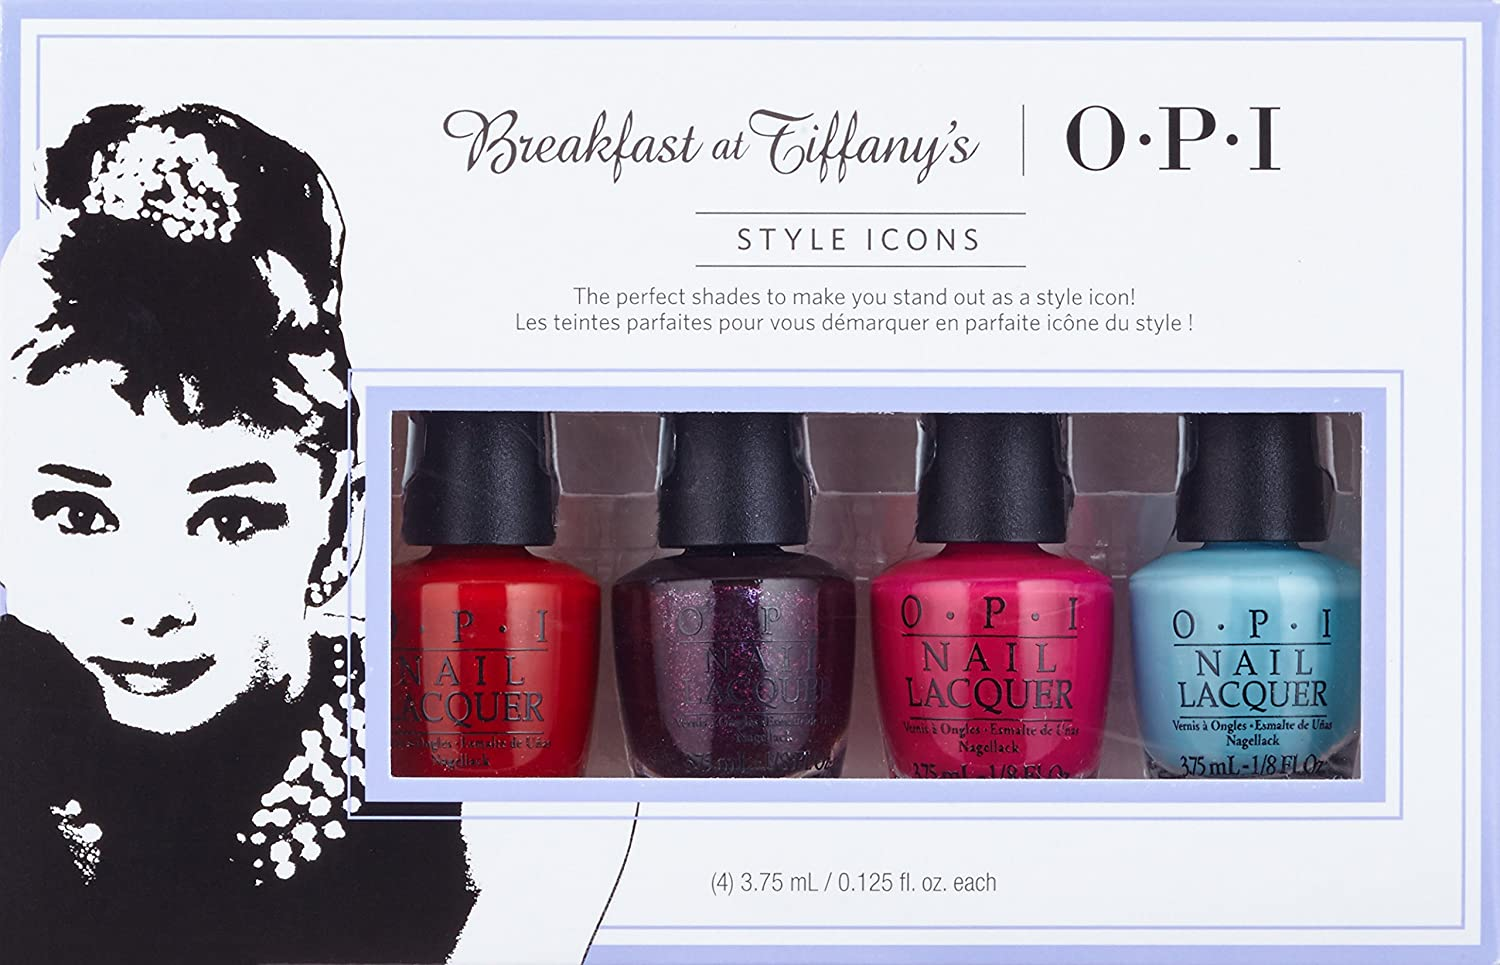 OPI Breakfast at Tiffanys Collection, Esmalte de uñas, color surtido, pack de 4: Amazon.es: Belleza